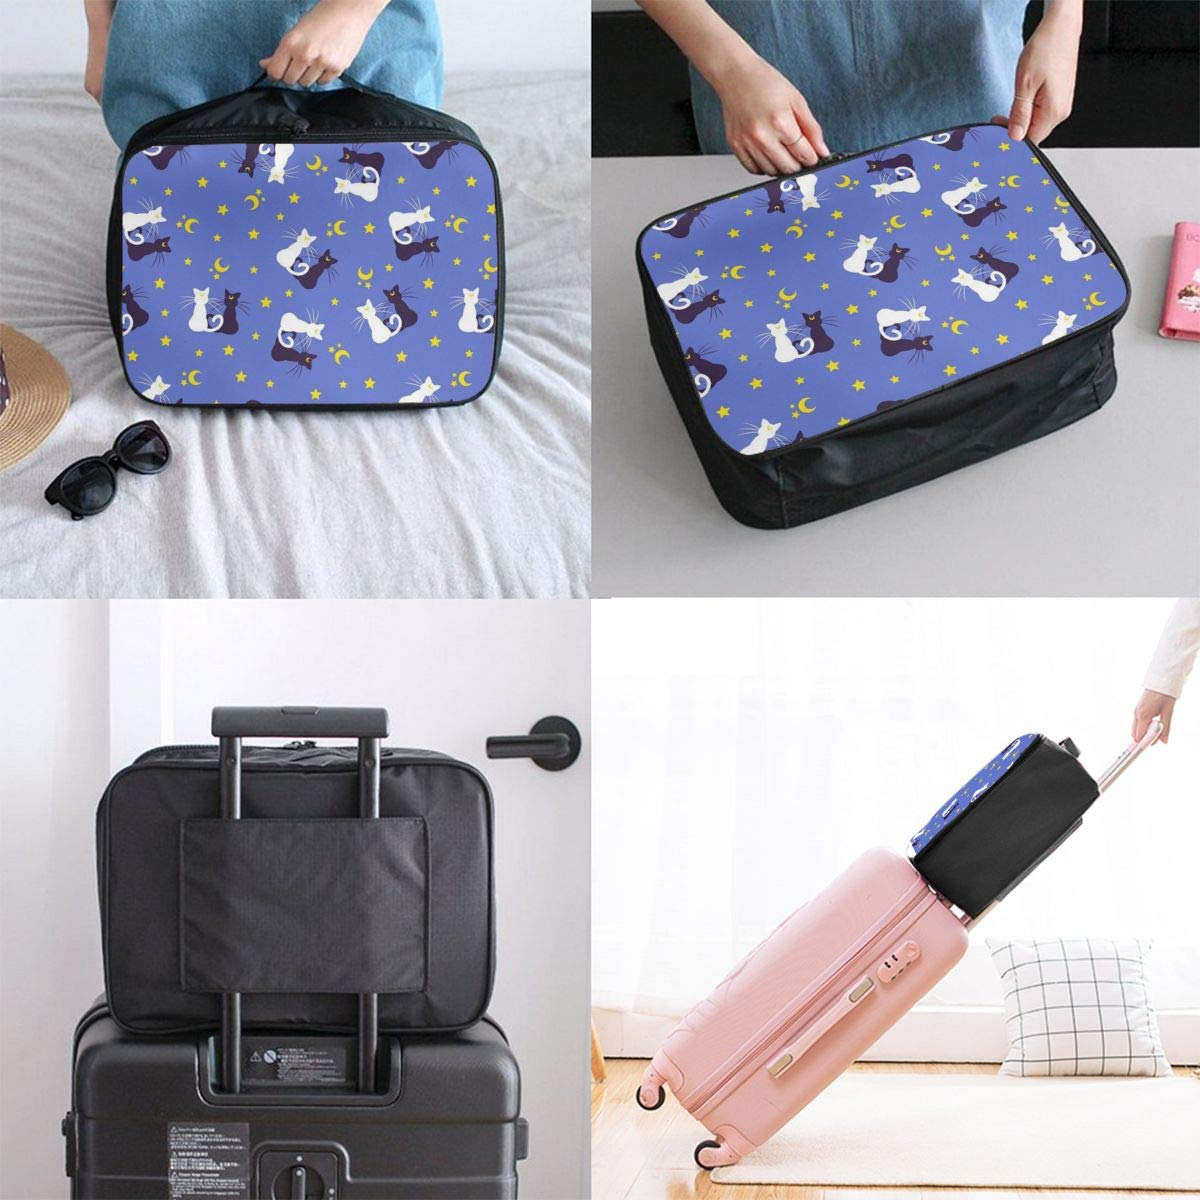 Travel Duffle Bag Weekender Bag In Trolley Handle Black And White Cactus Grey Luggage Hanging Bag Water Repellent Nylon Luggage Duffel Bag Hand Bag For Gym Sports Vacation